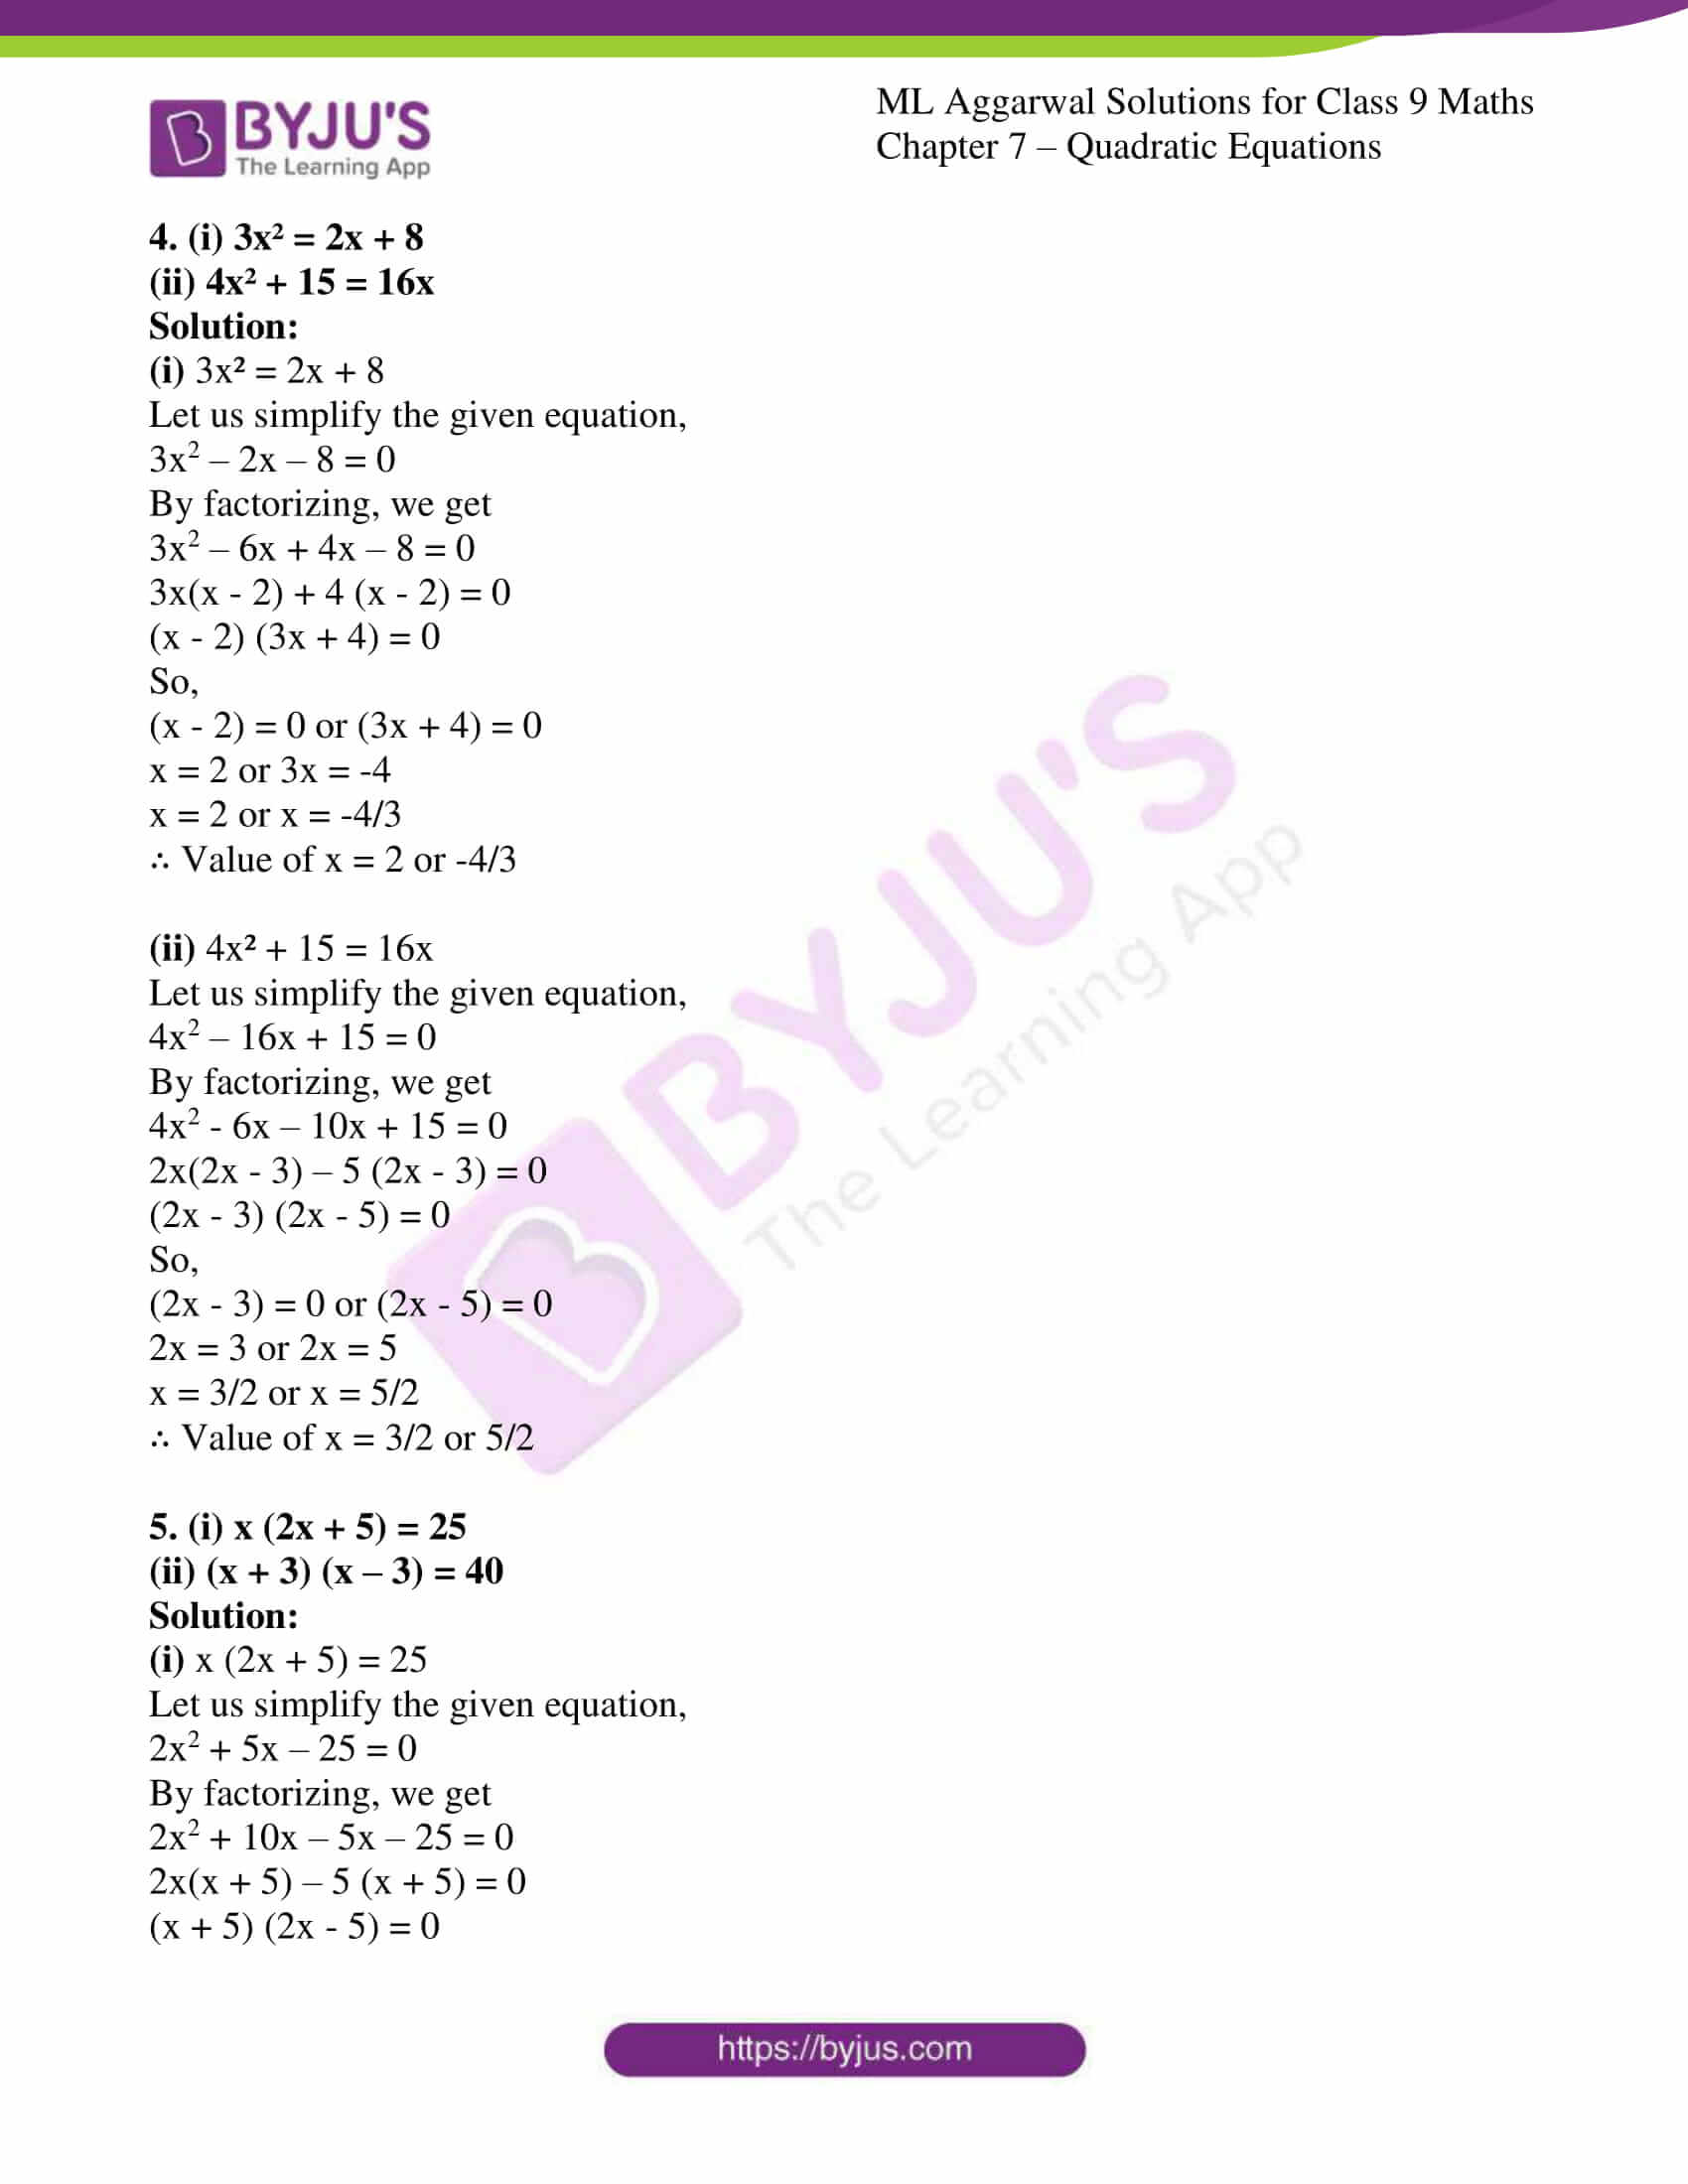 ml aggarwal solutions for class 9 maths chapter 7 03